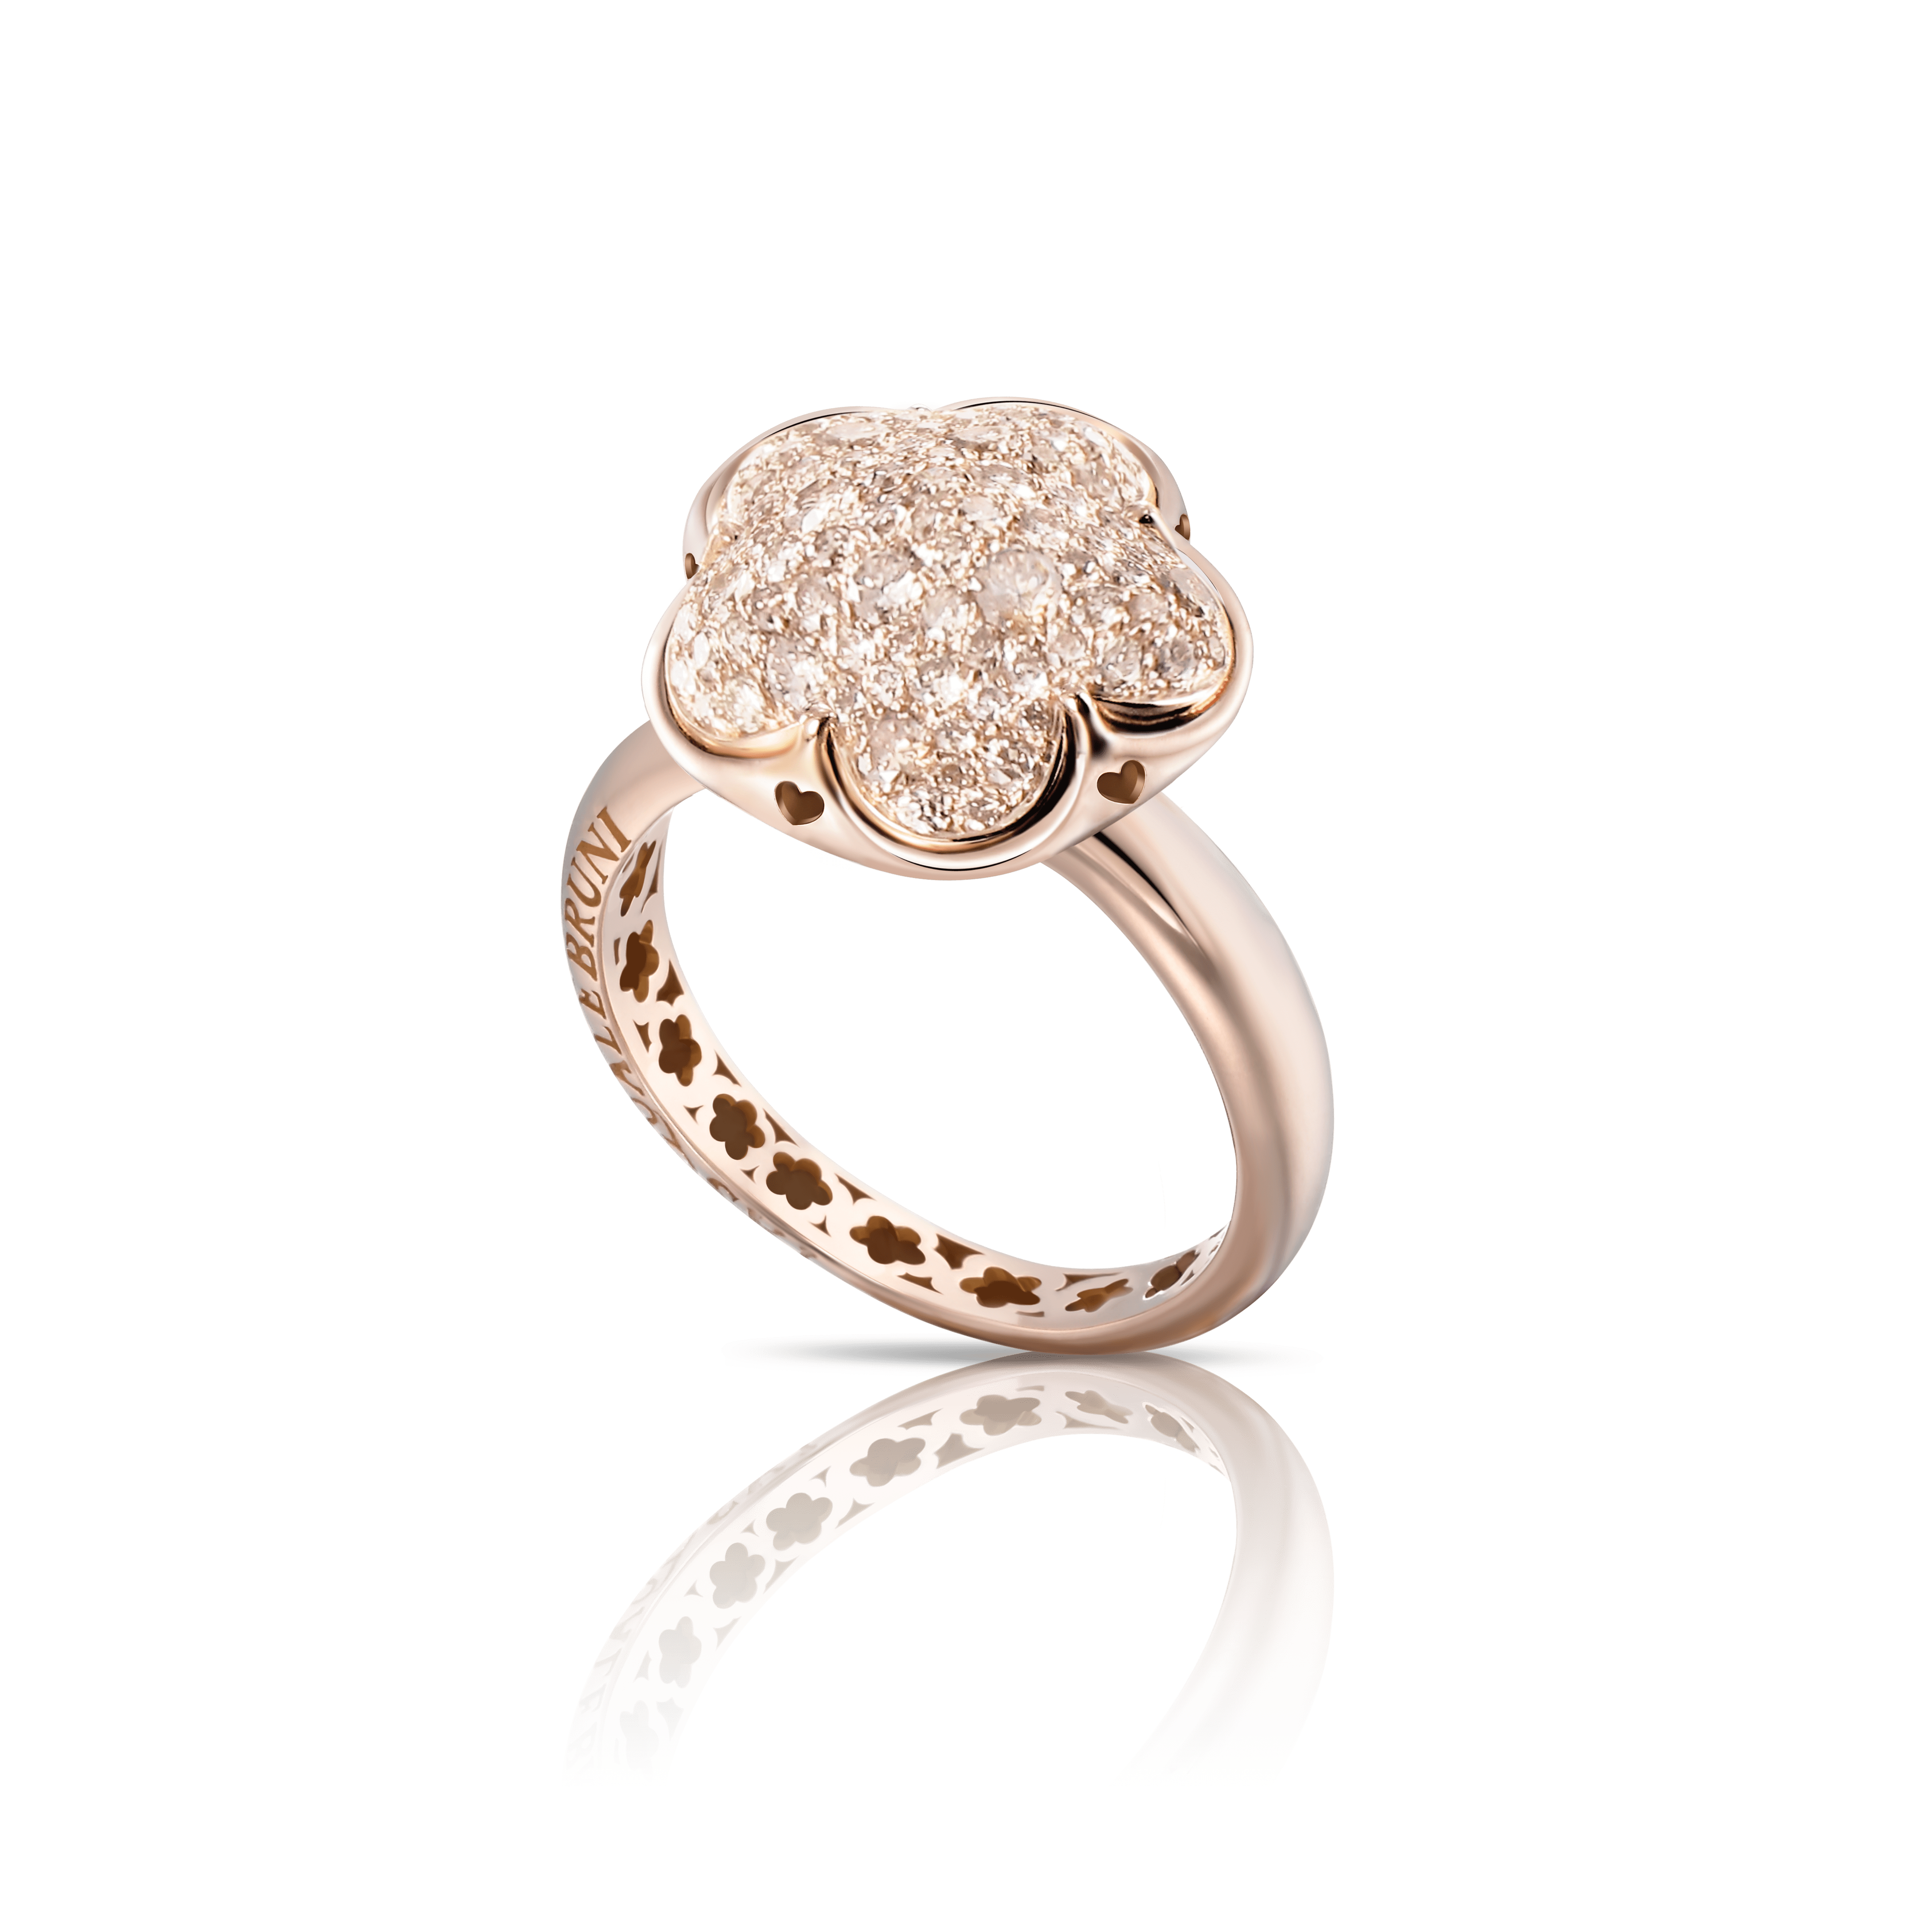 18k Rose Gold Bon Ton Ring with Champagne Diamonds